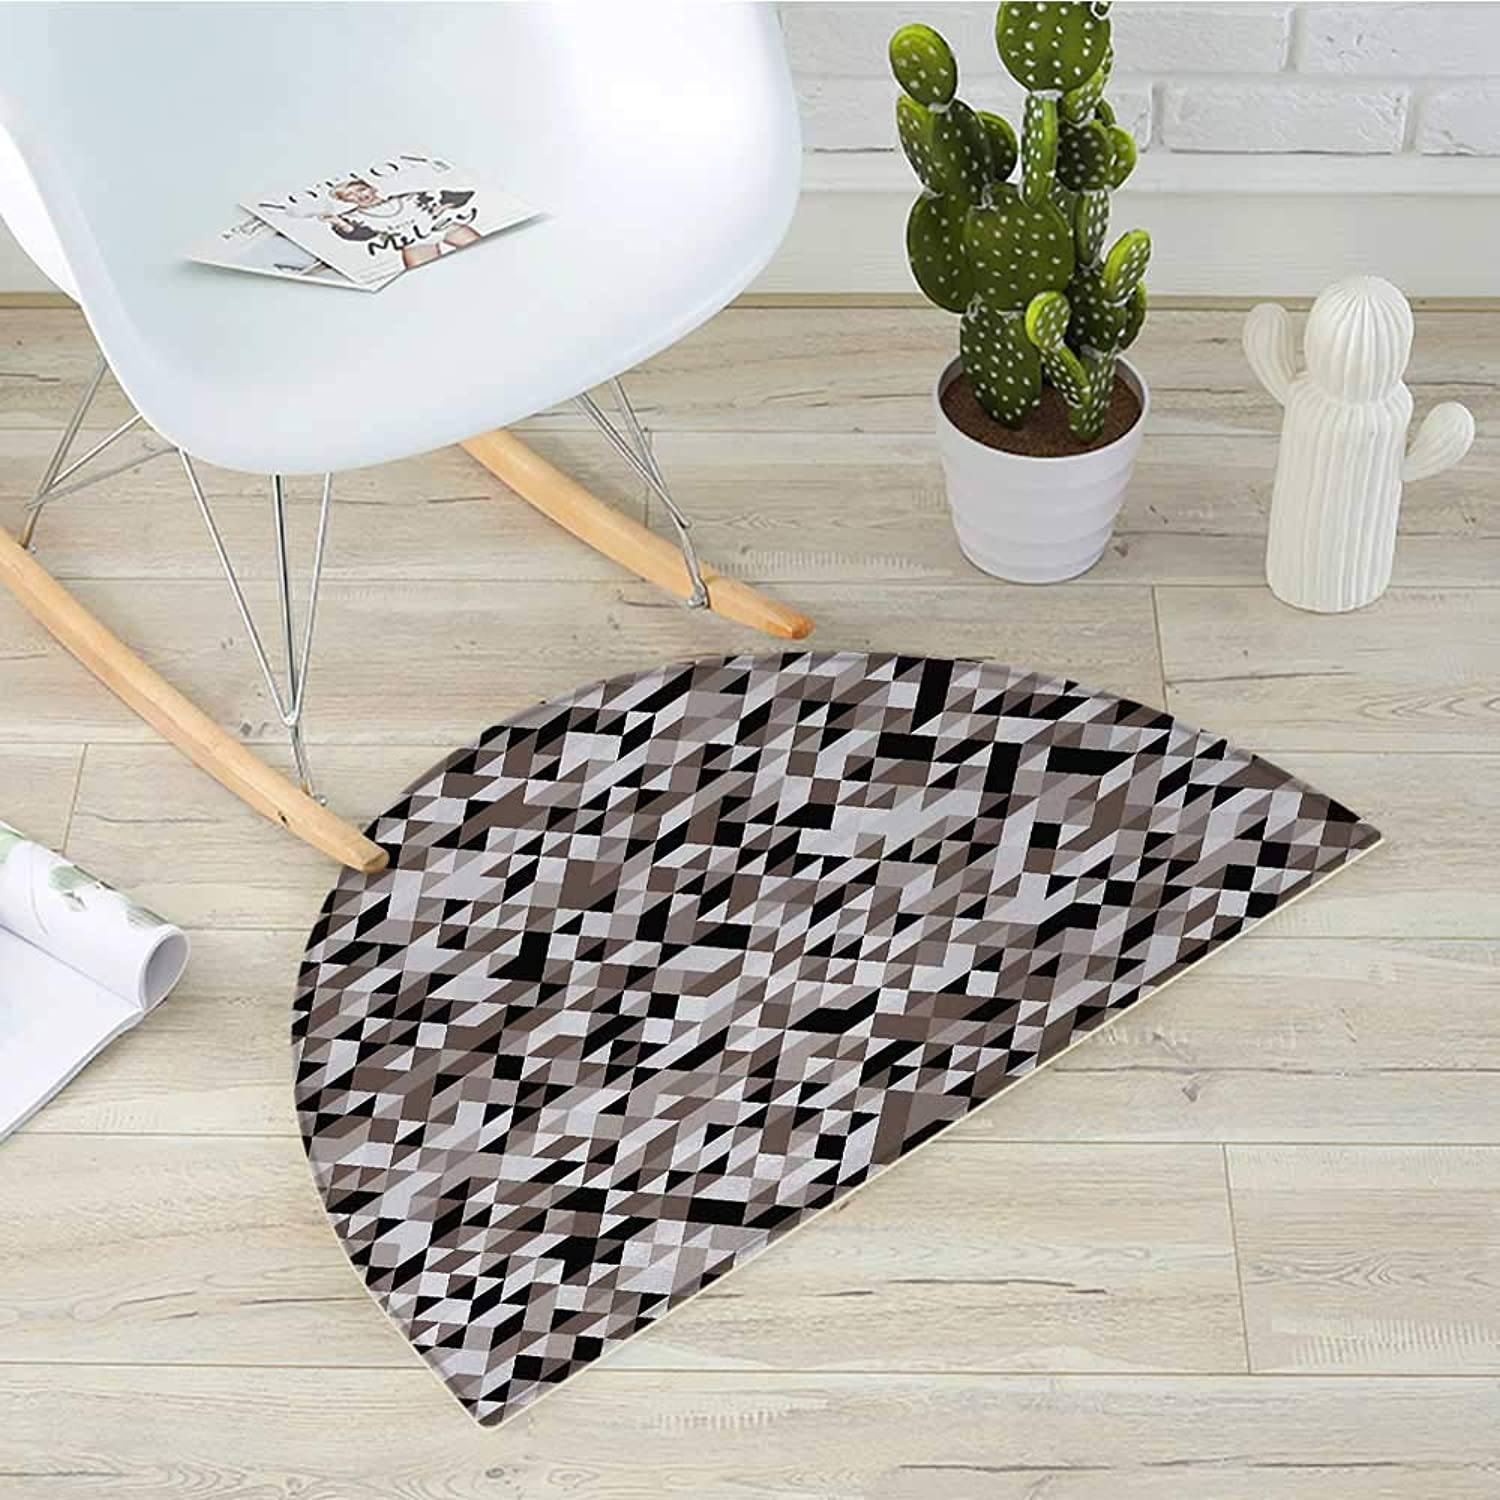 Geometric Half Round Door mats Abstract bluerry Image Fashionable Design Shades of colors Tones Image Bathroom Mat H 31.5  xD 47.2  Cocoa Black White